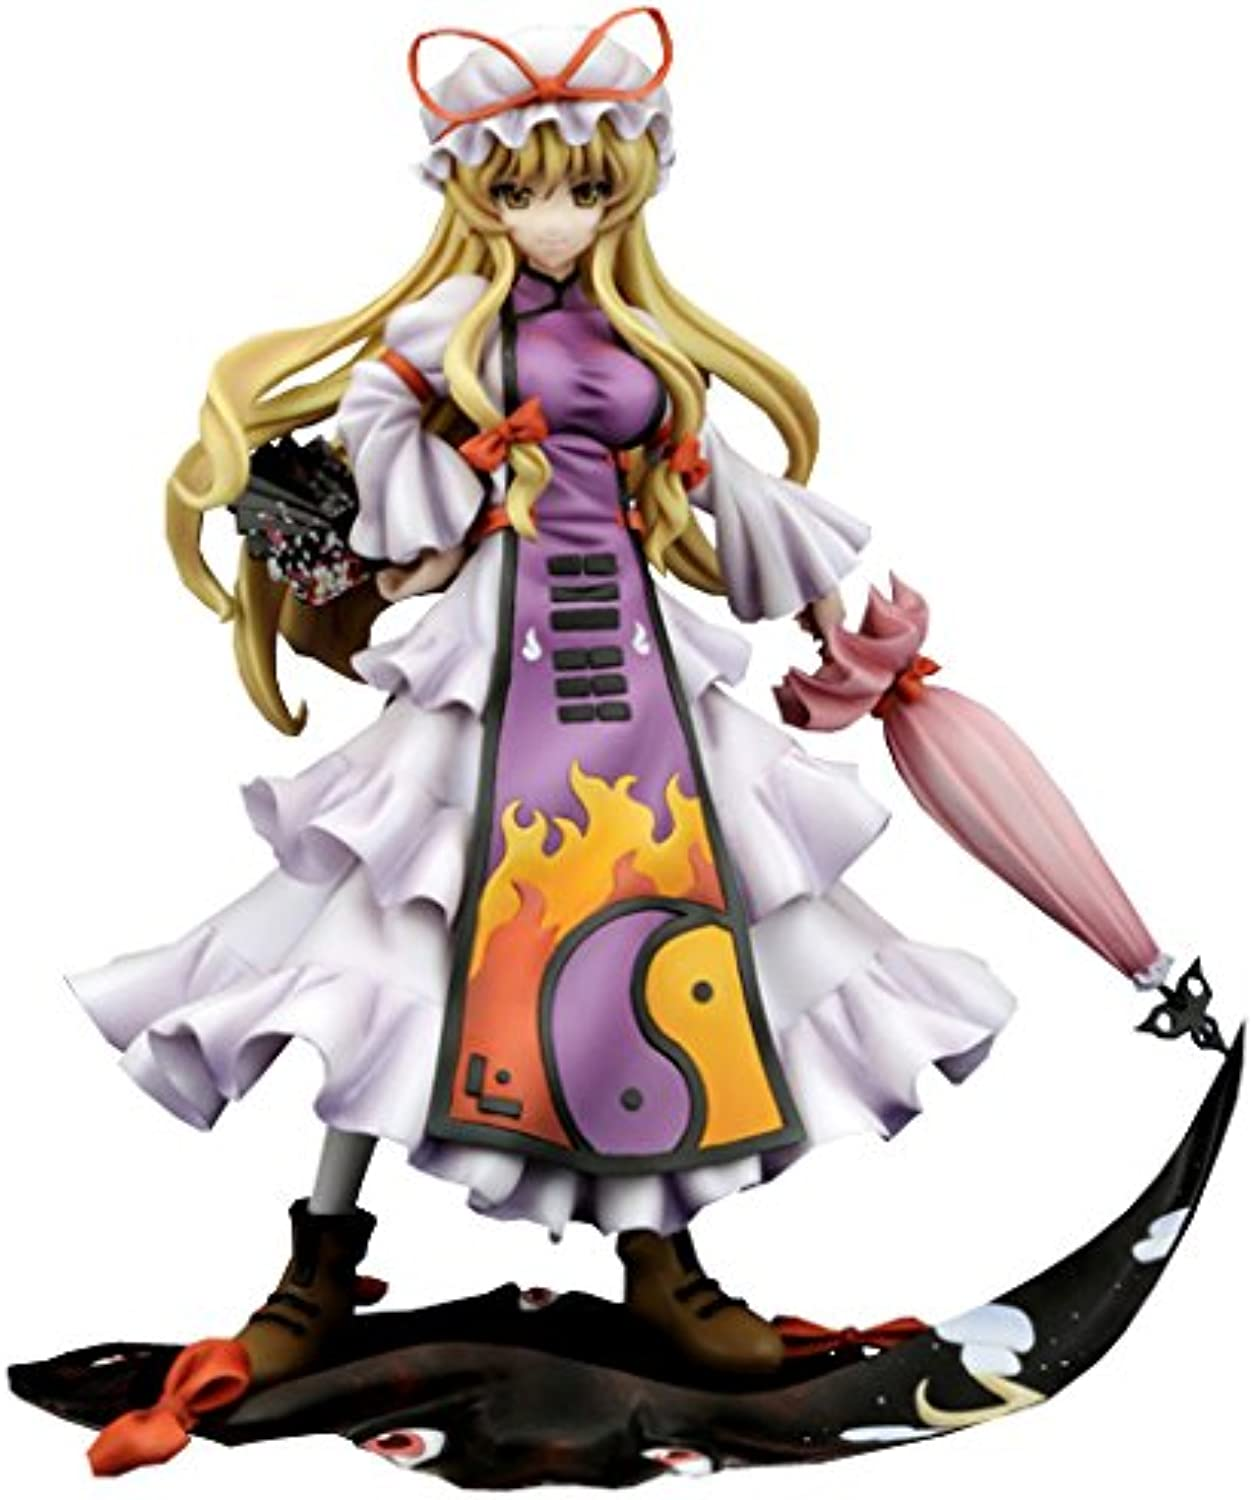 alto descuento Yakumo púrpura clothes Mage Mage Mage version of the  boundary of illusion  (japan import)  saludable